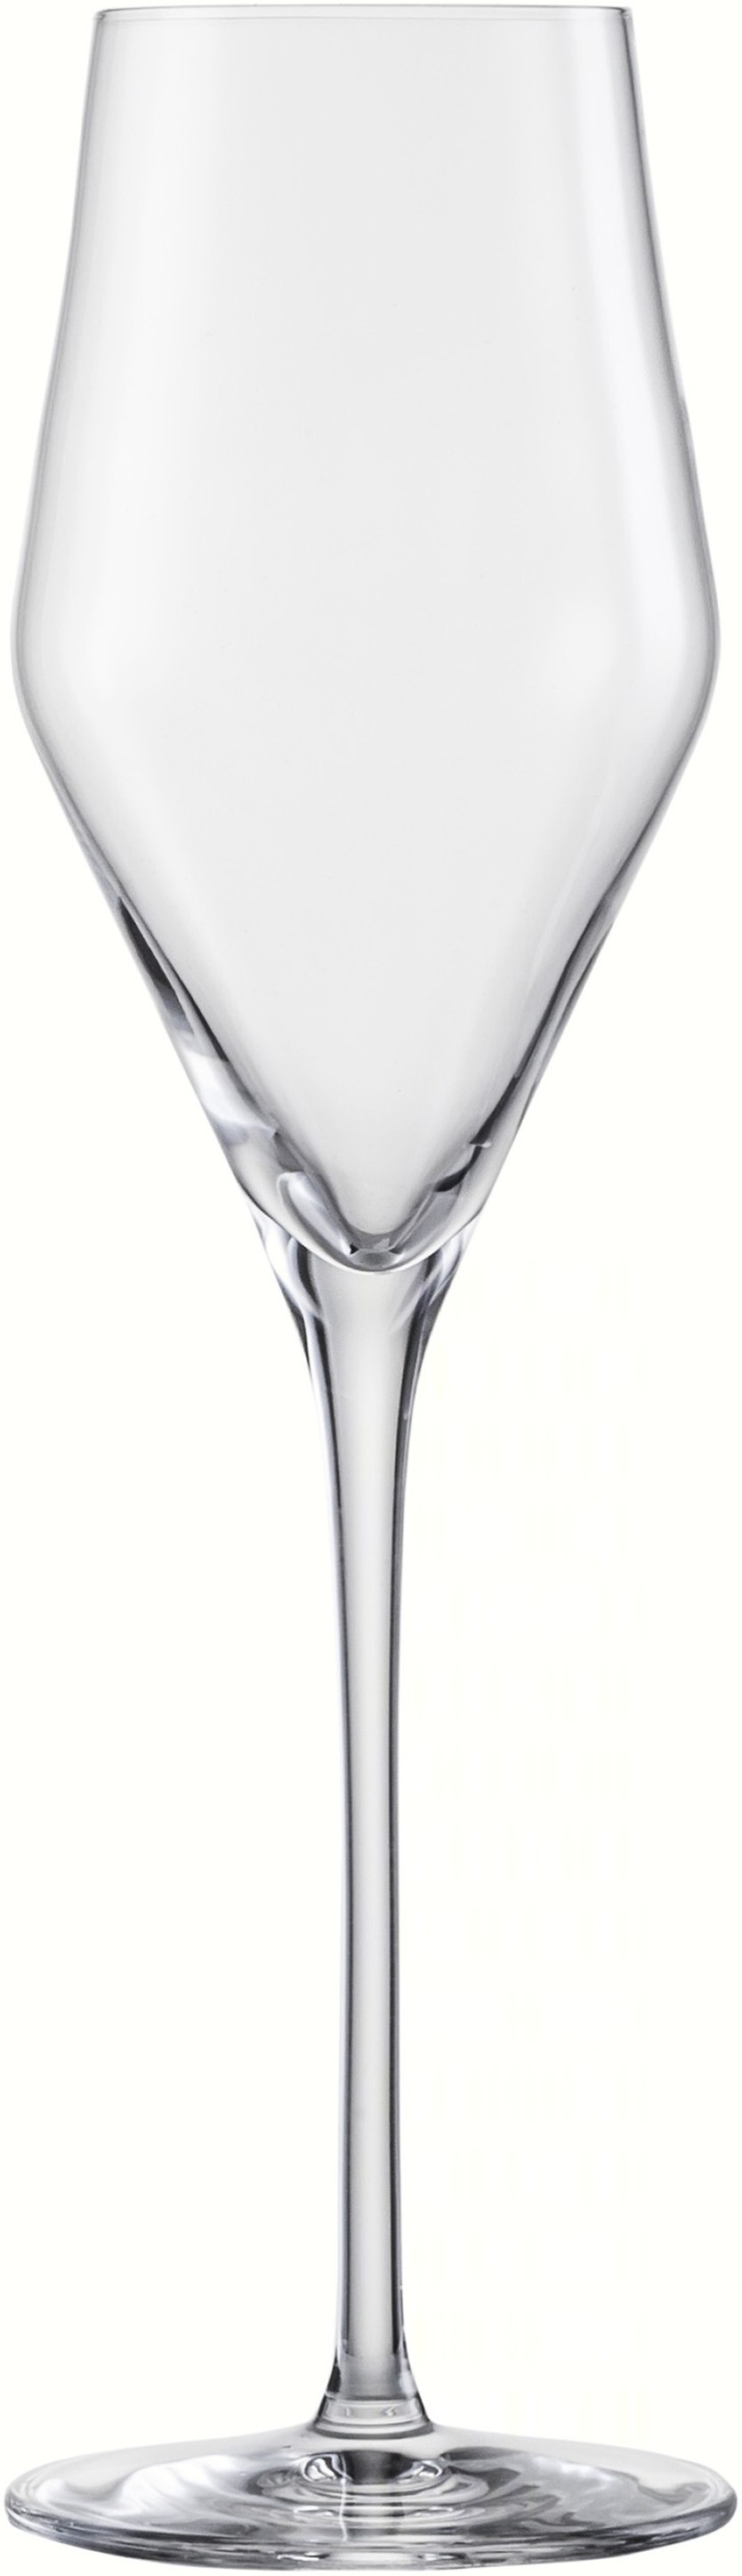 Sky SP - Champagne Glass (Set of 2)